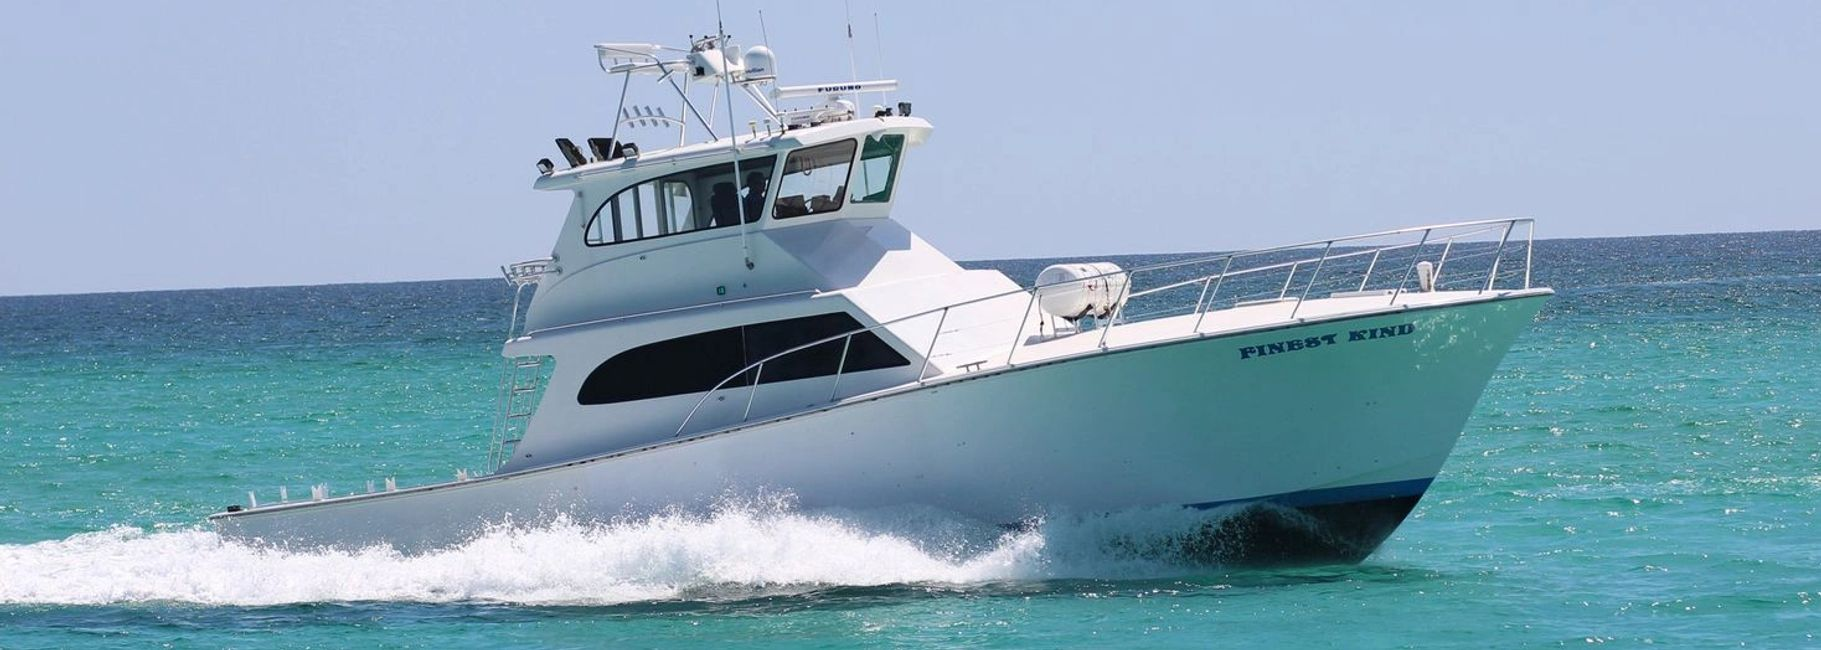 THE FINEST KIND FISHING CHARTER IS PARTNERED WITH 30A  JEEP RENTALS